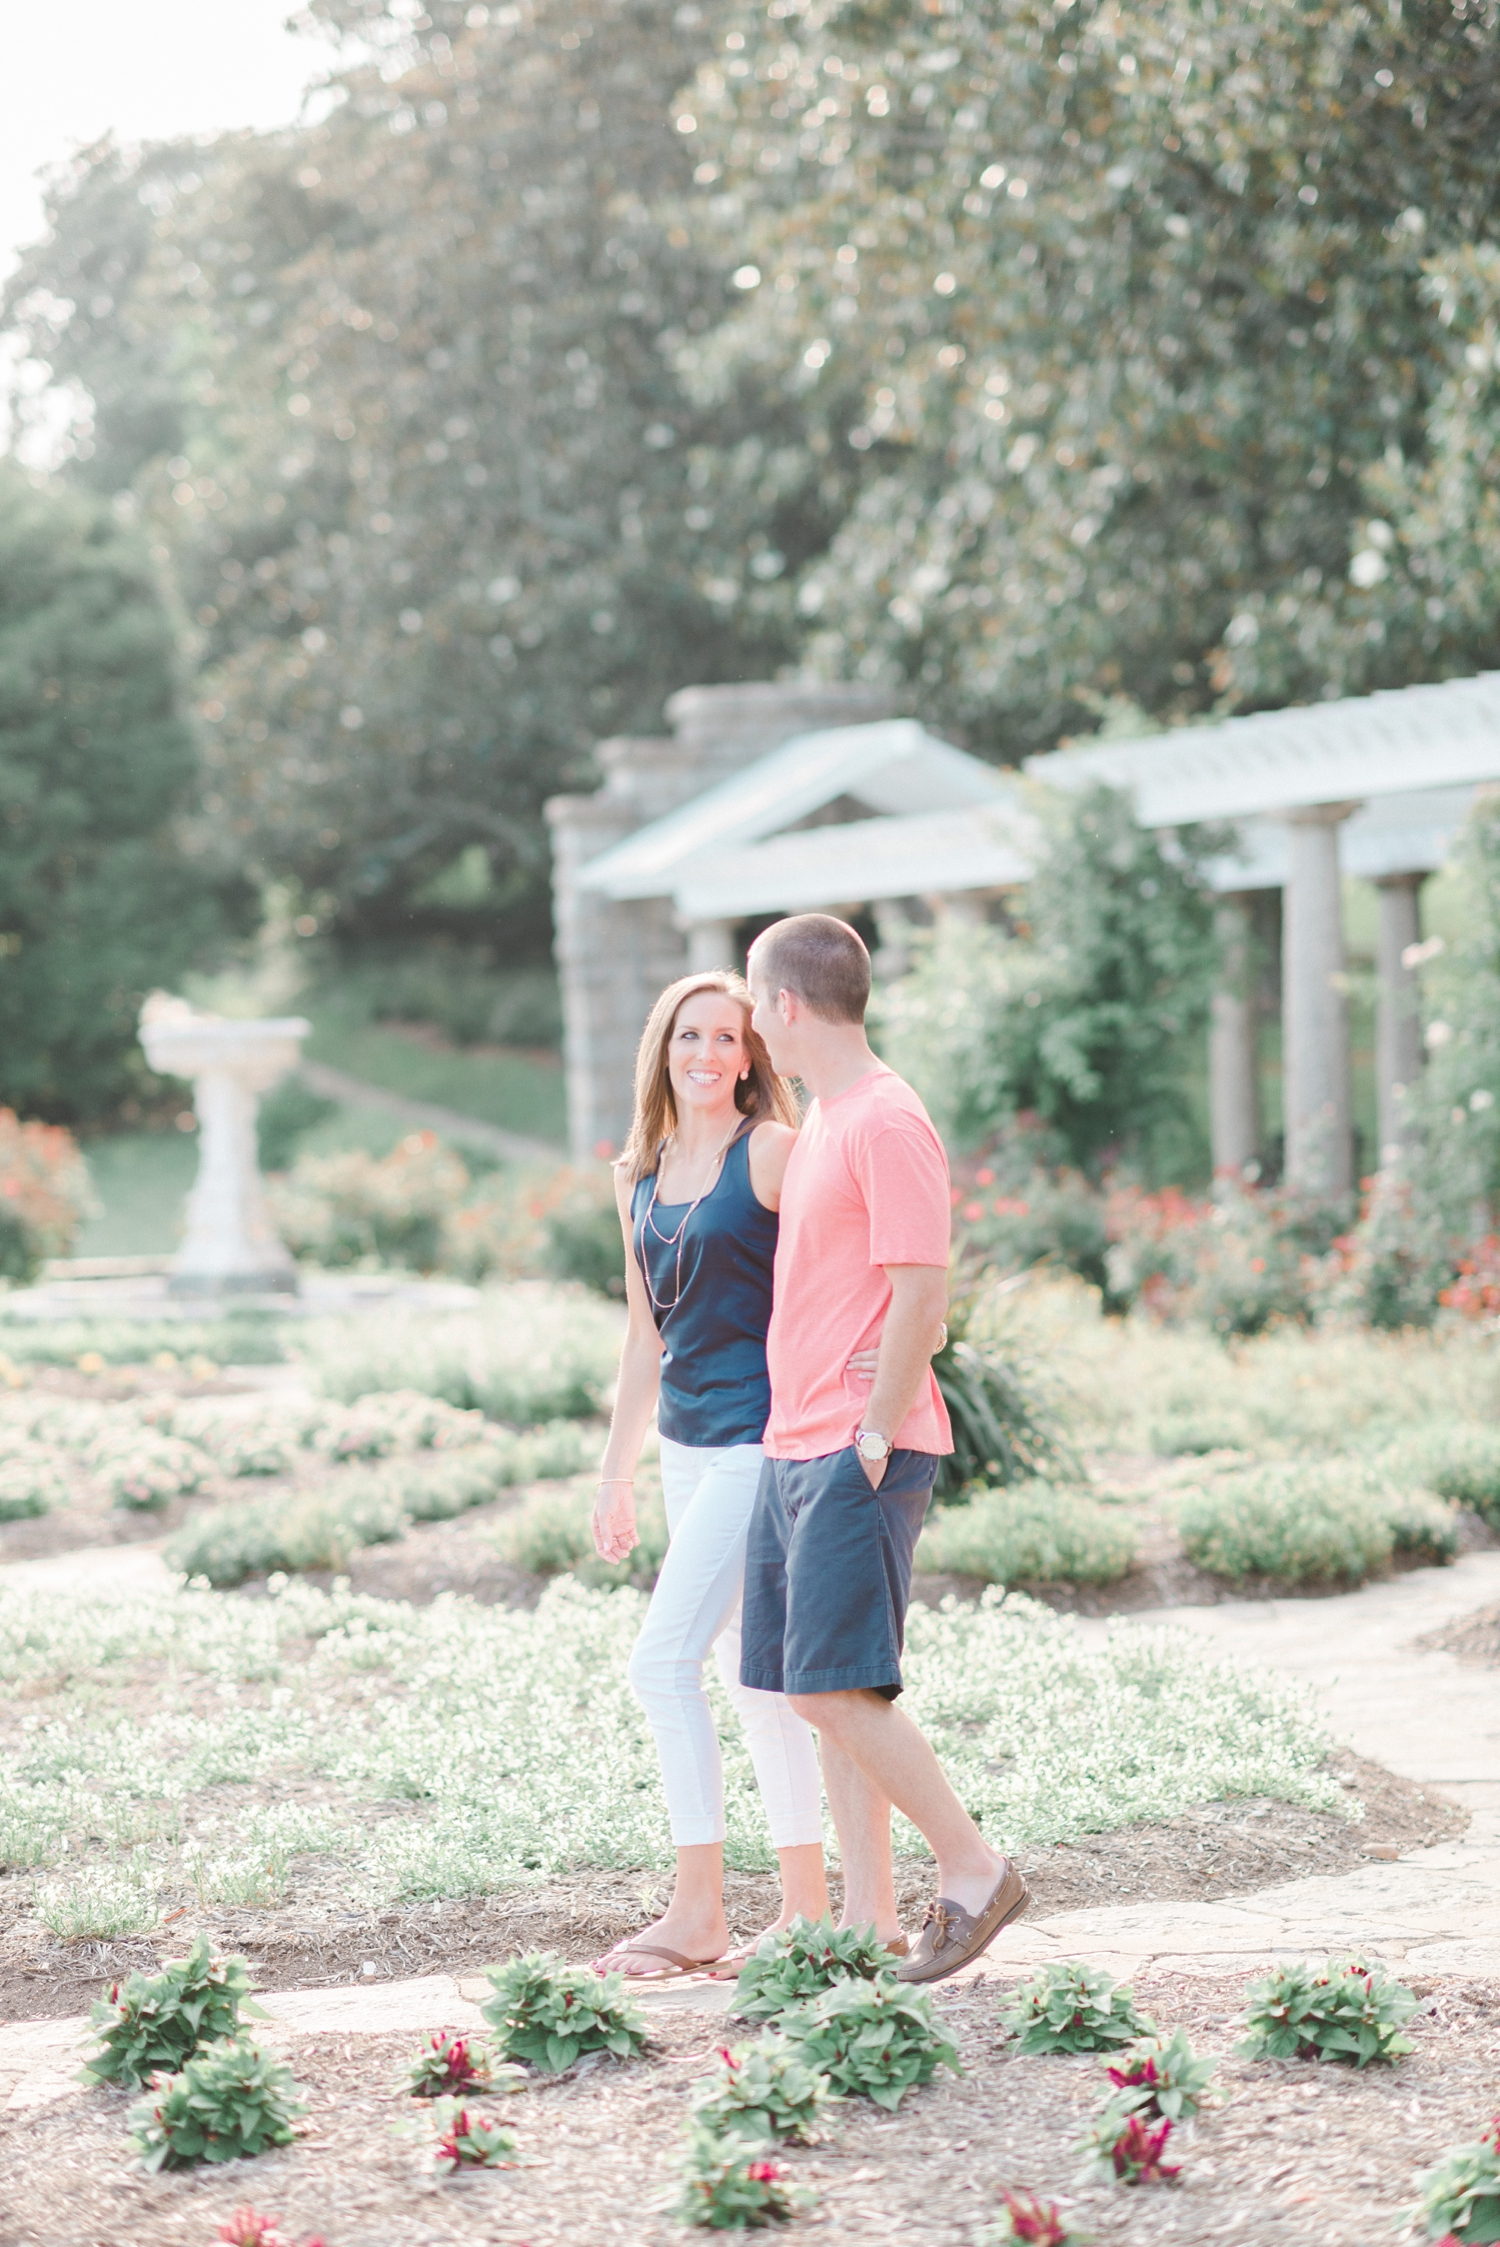 Maymon_Park_richmond_engagement_photography_0010.jpg